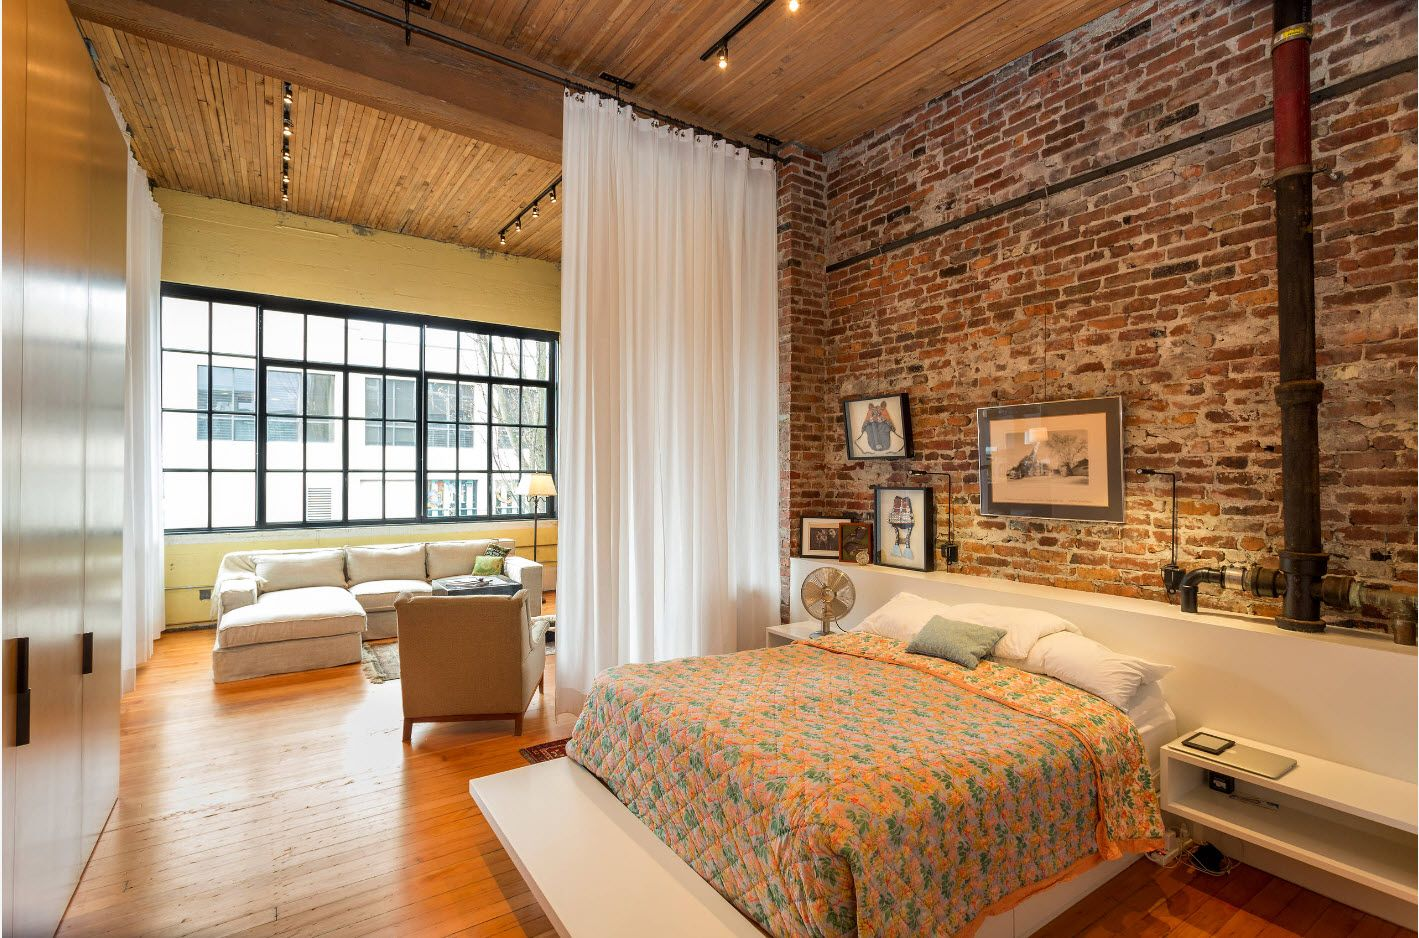 Really spectacular loft example of the bedroom design with brickwork